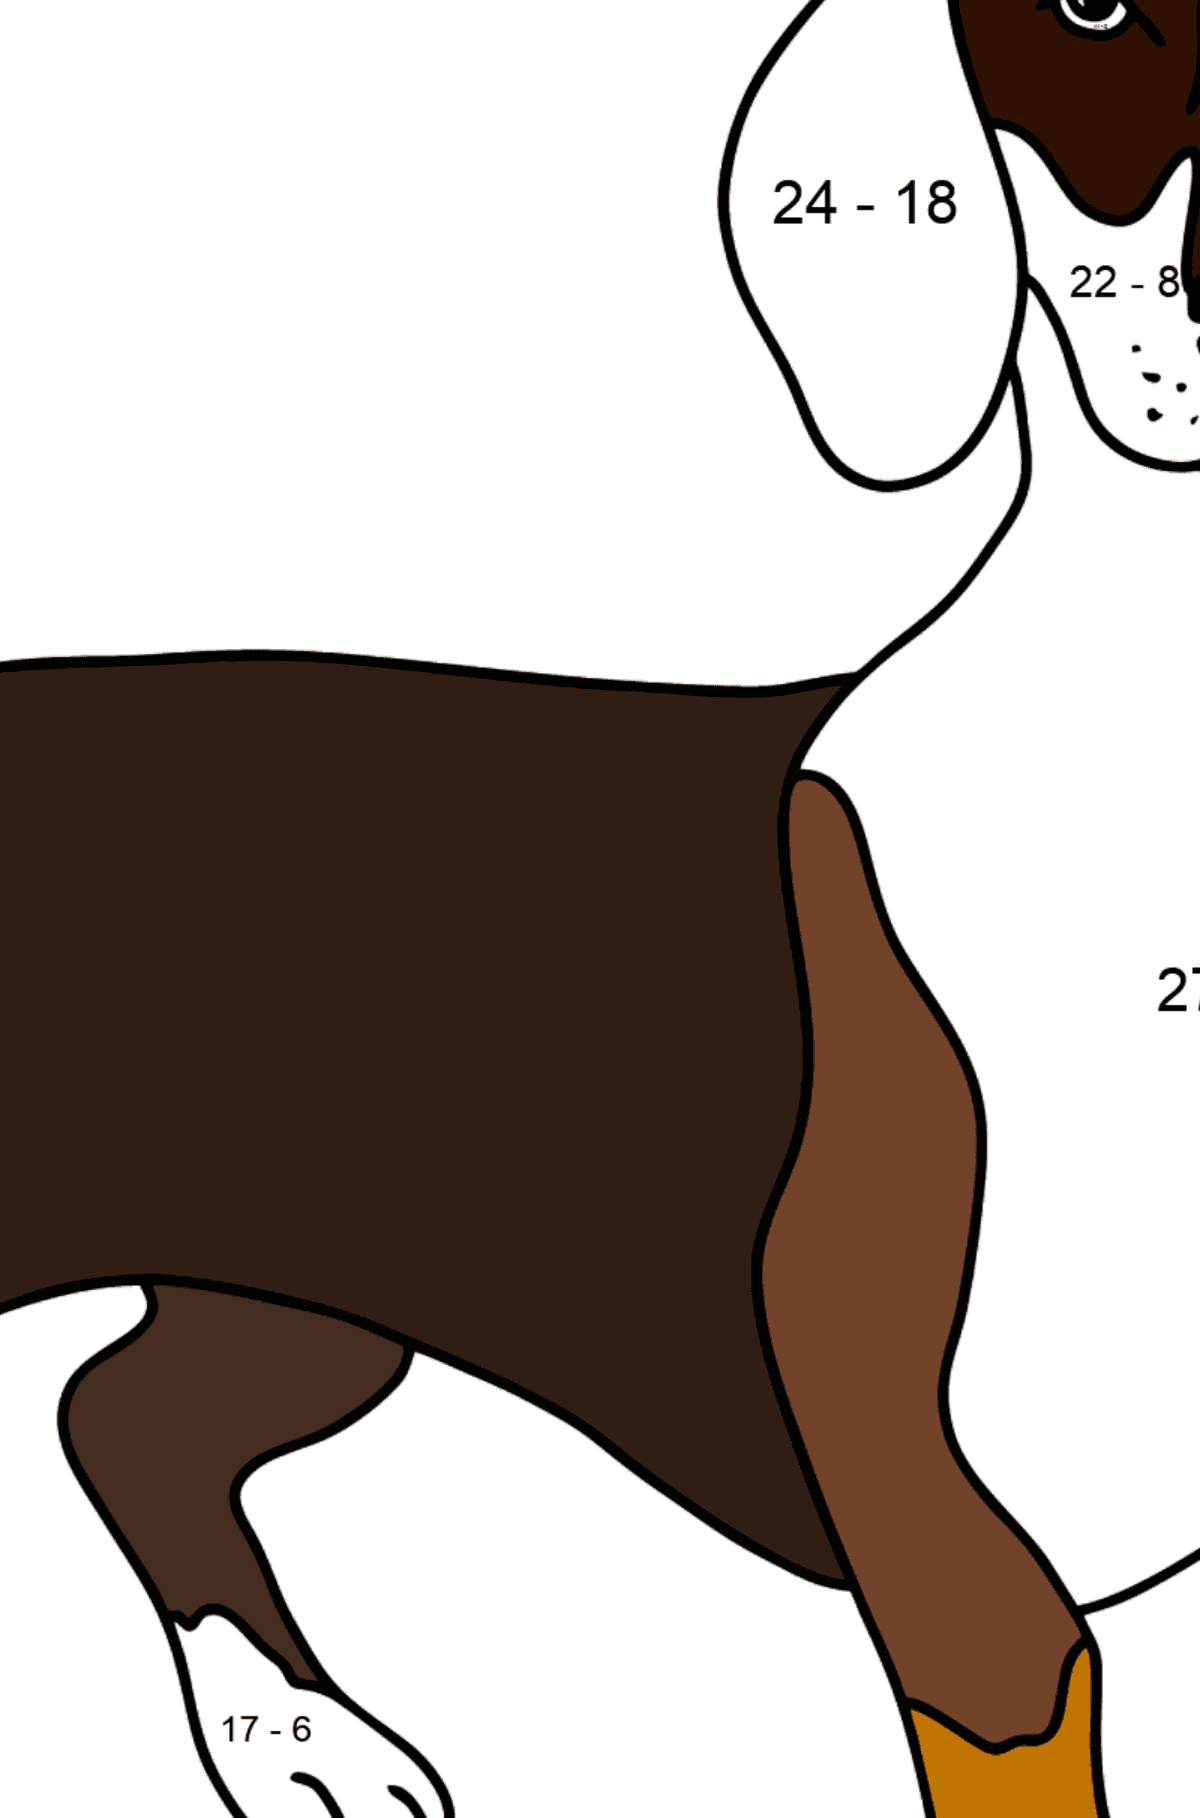 Dachshund coloring page - Math Coloring - Subtraction for Kids